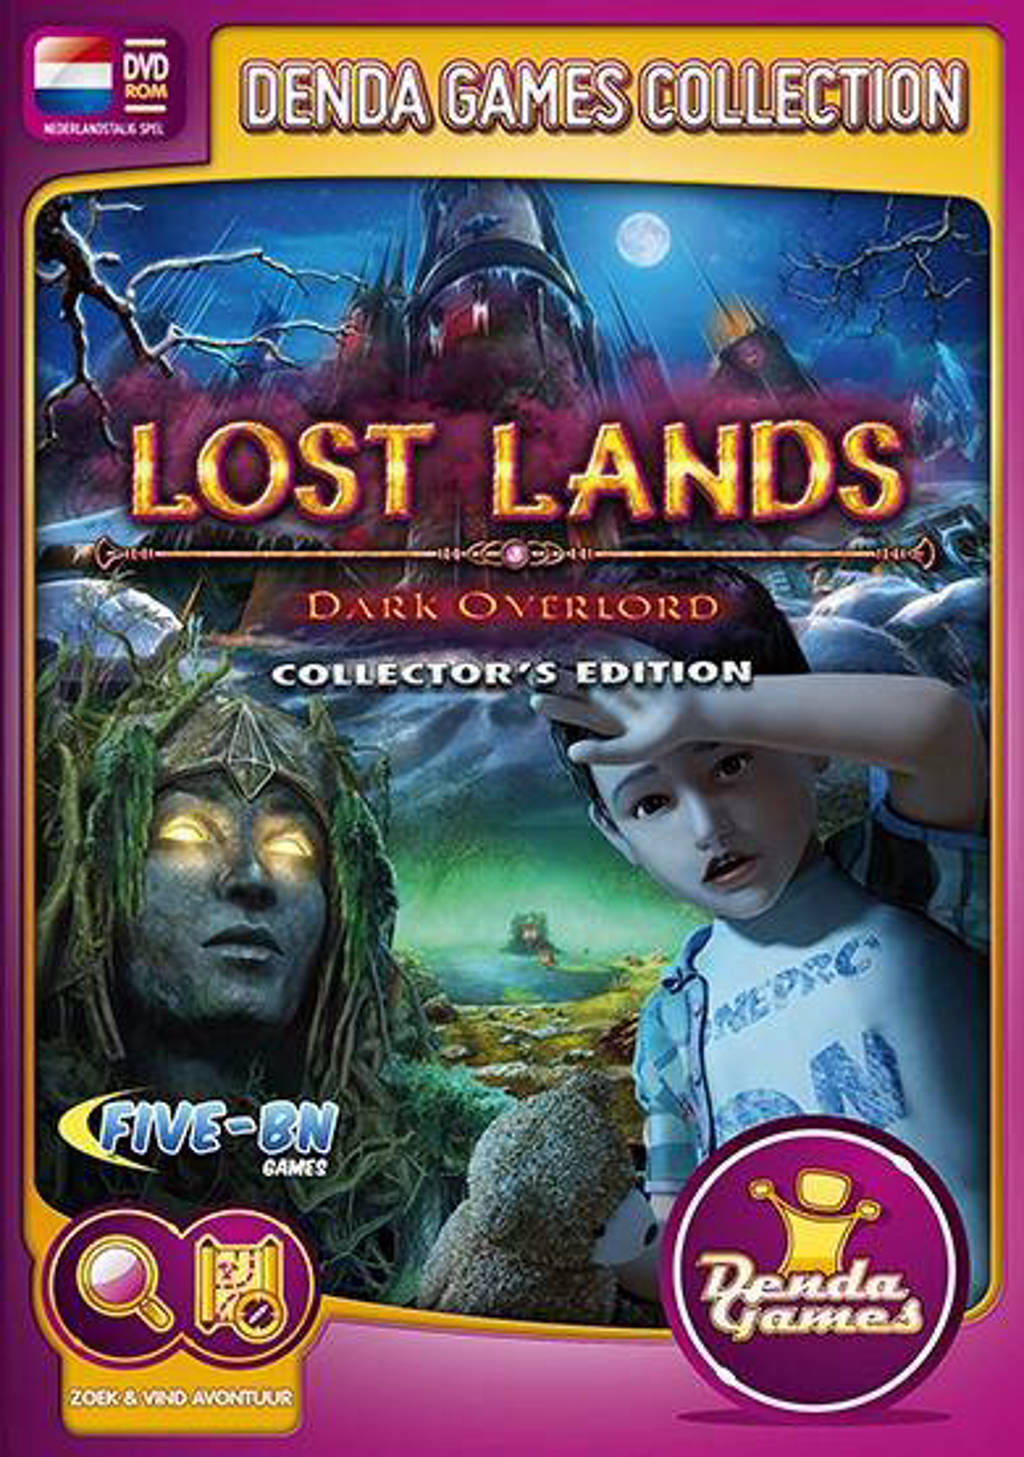 Lost lands - Dark overlord (Collectors edition) (PC)